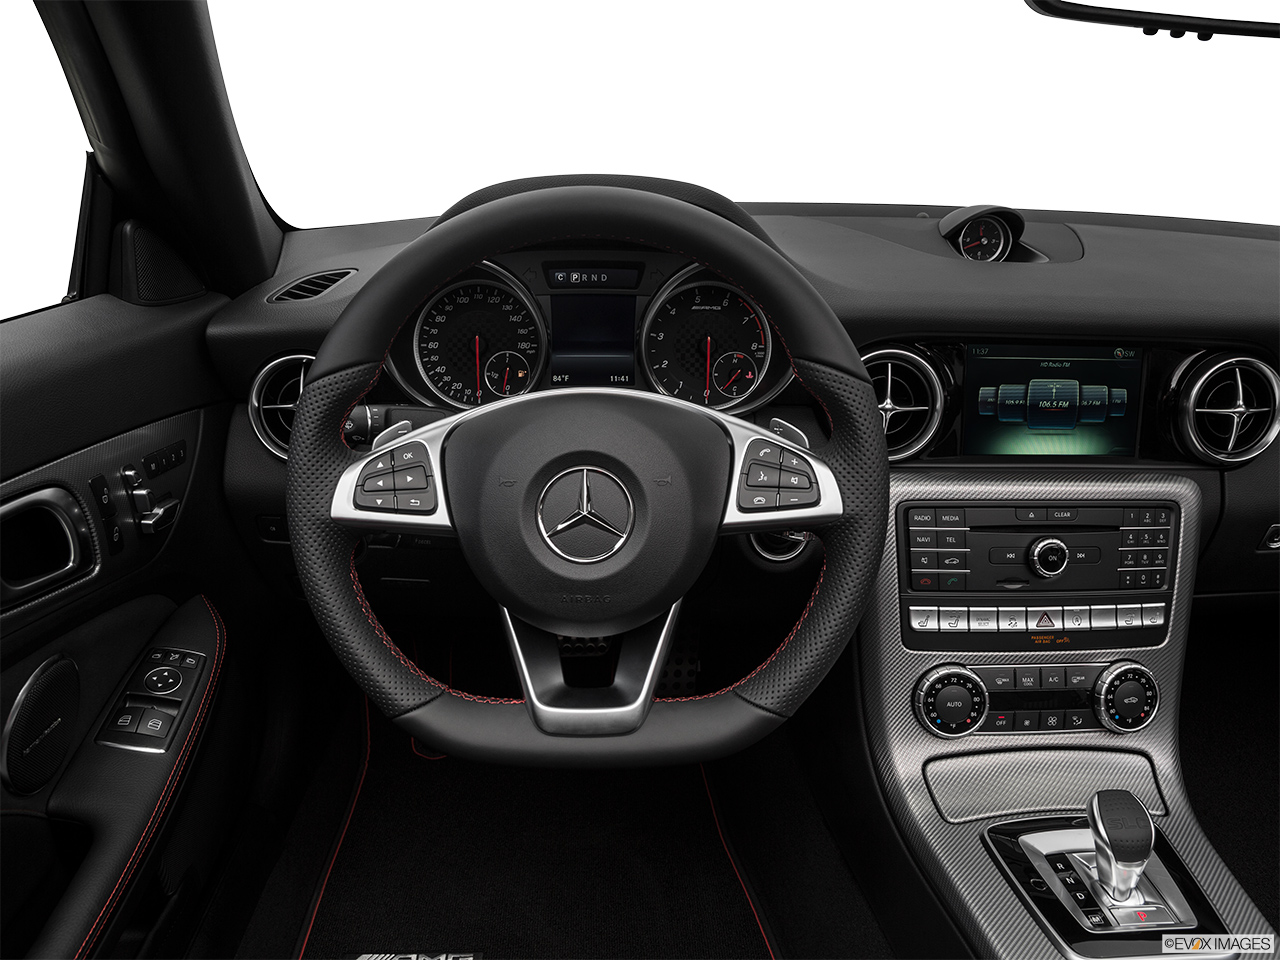 2019 Mercedes-Benz SLC-class SLC43 AMG Steering wheel/Center Console.